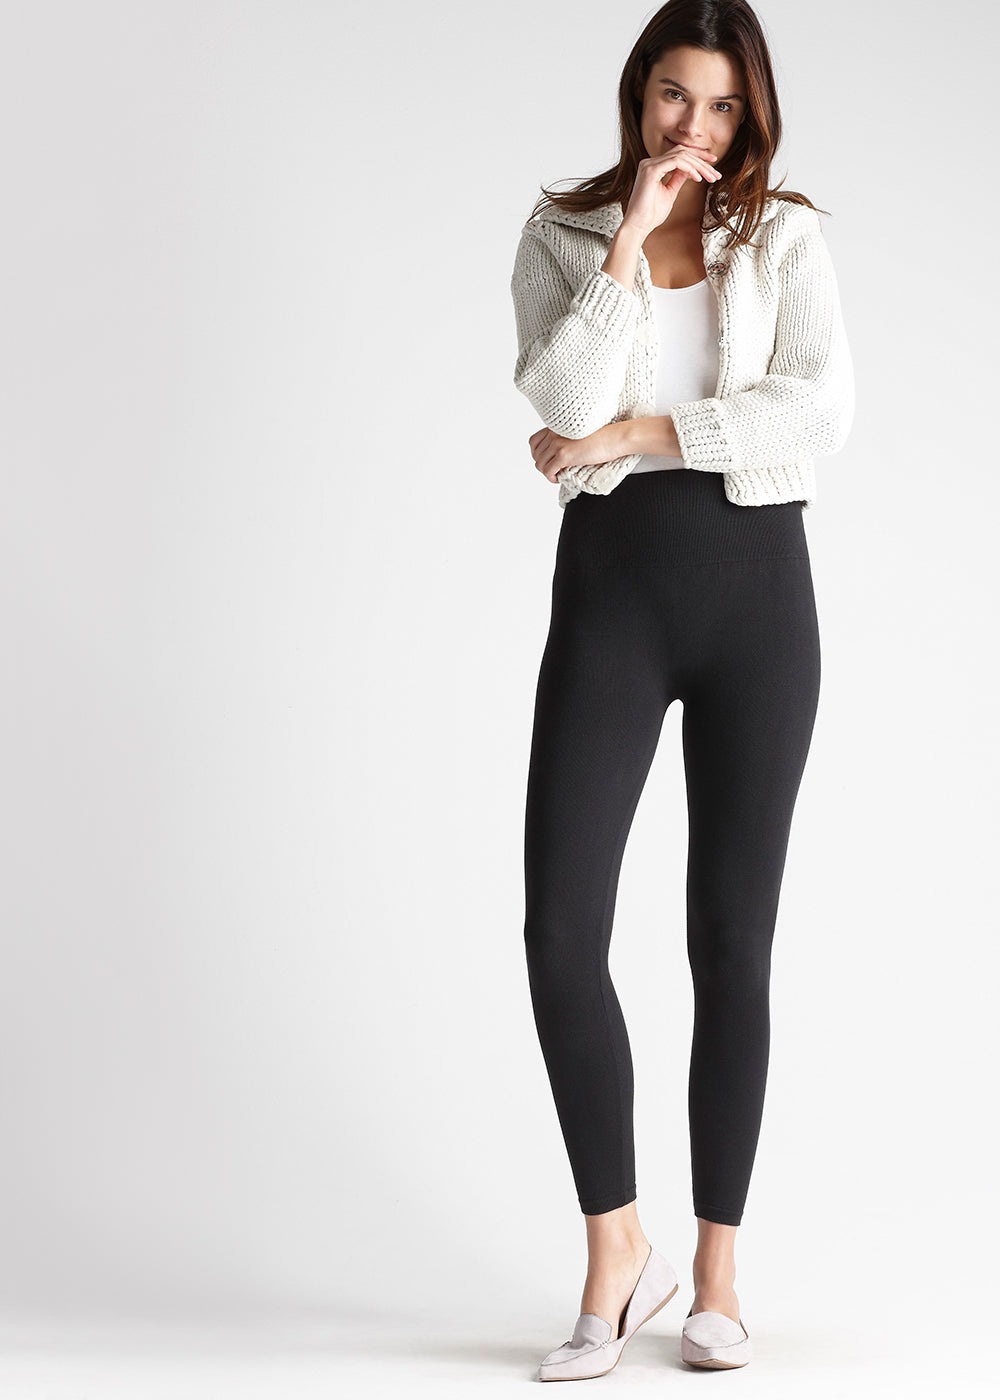 Yummie Anita Seamless Terry Lined Shaping Legging